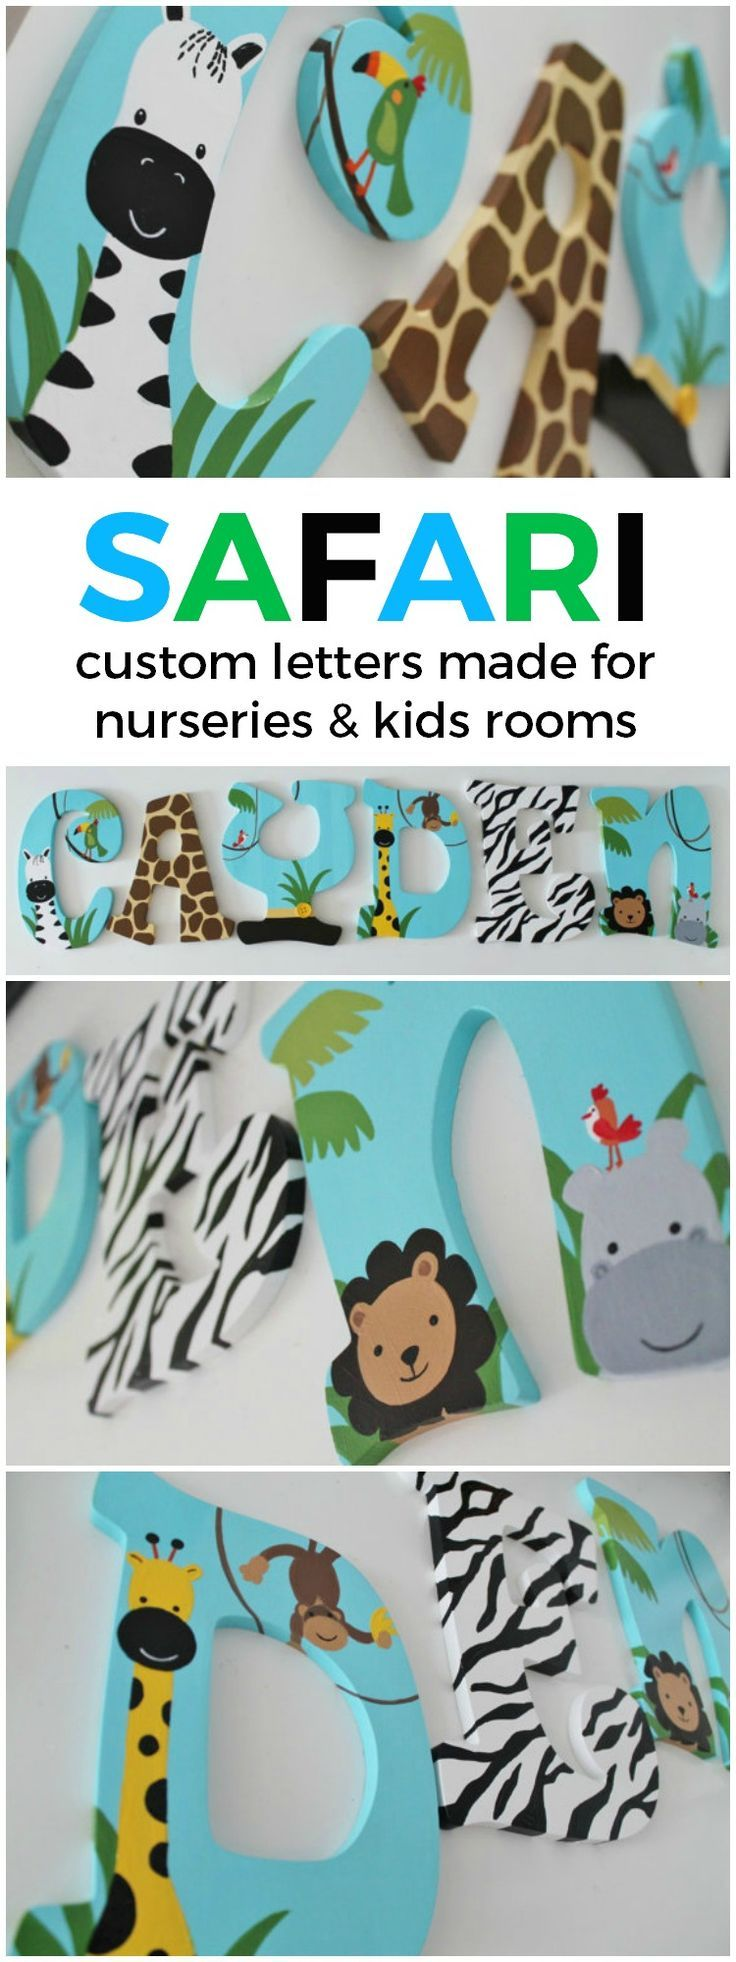 Lambs and Ivy Peek A Boo Safari Themed Wooden Letters for Nursery or Bedroom | Unique and Chic Creations custom kids room letters